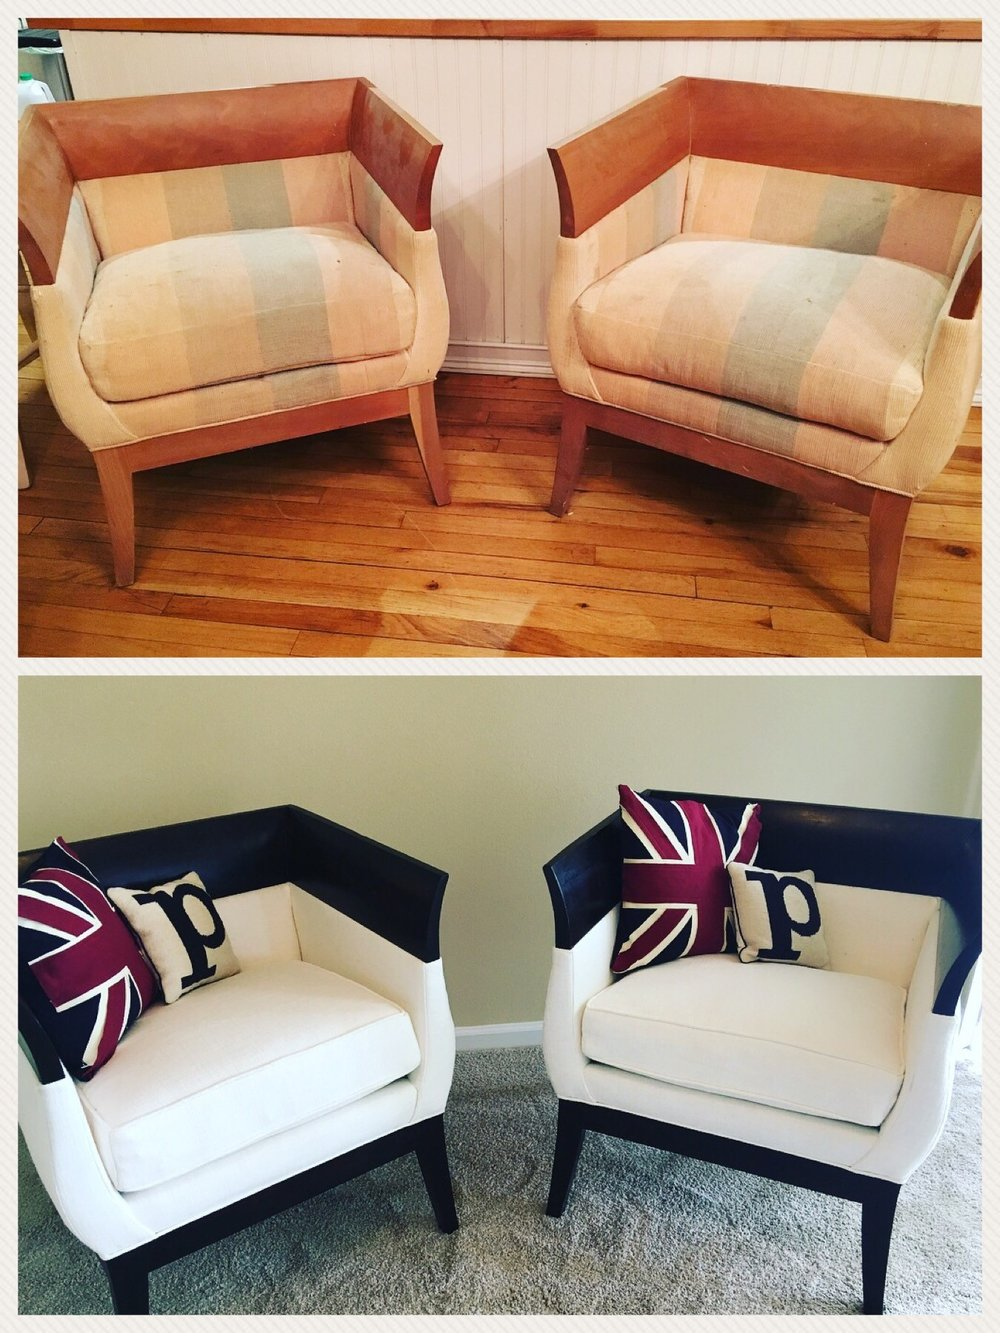 Before After Arm Chair.jpg